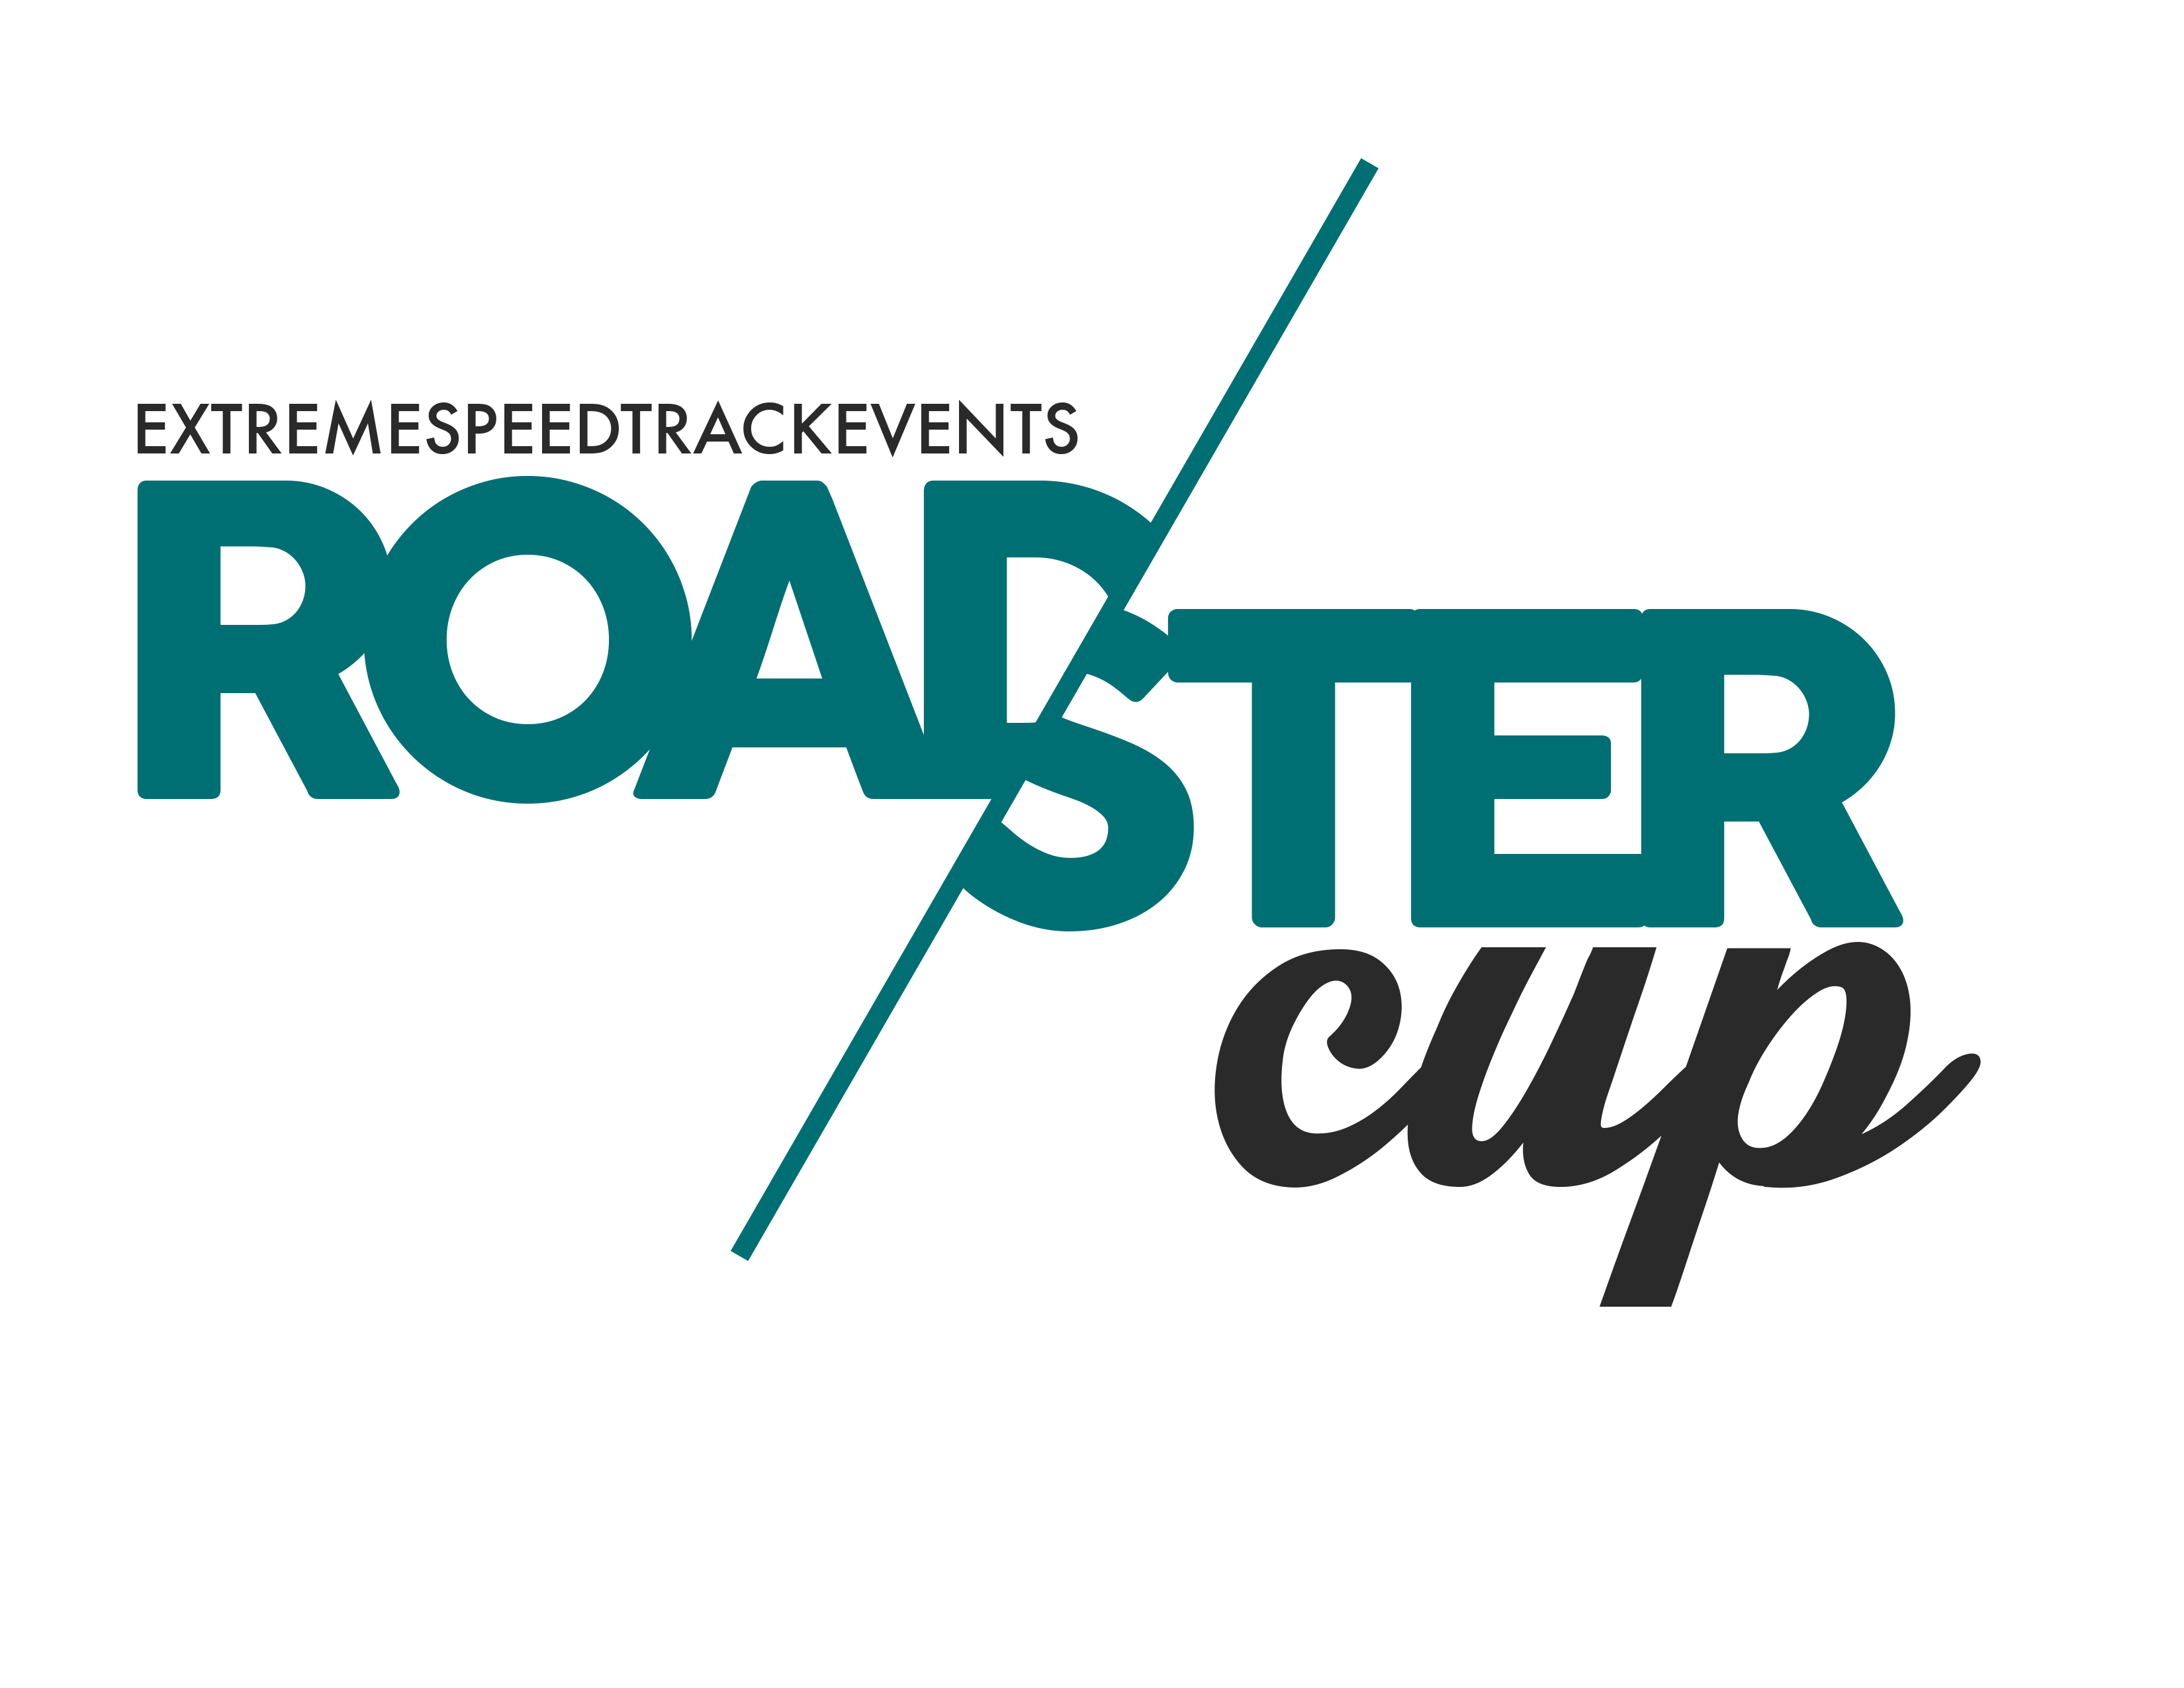 roadstercup logo teal 1